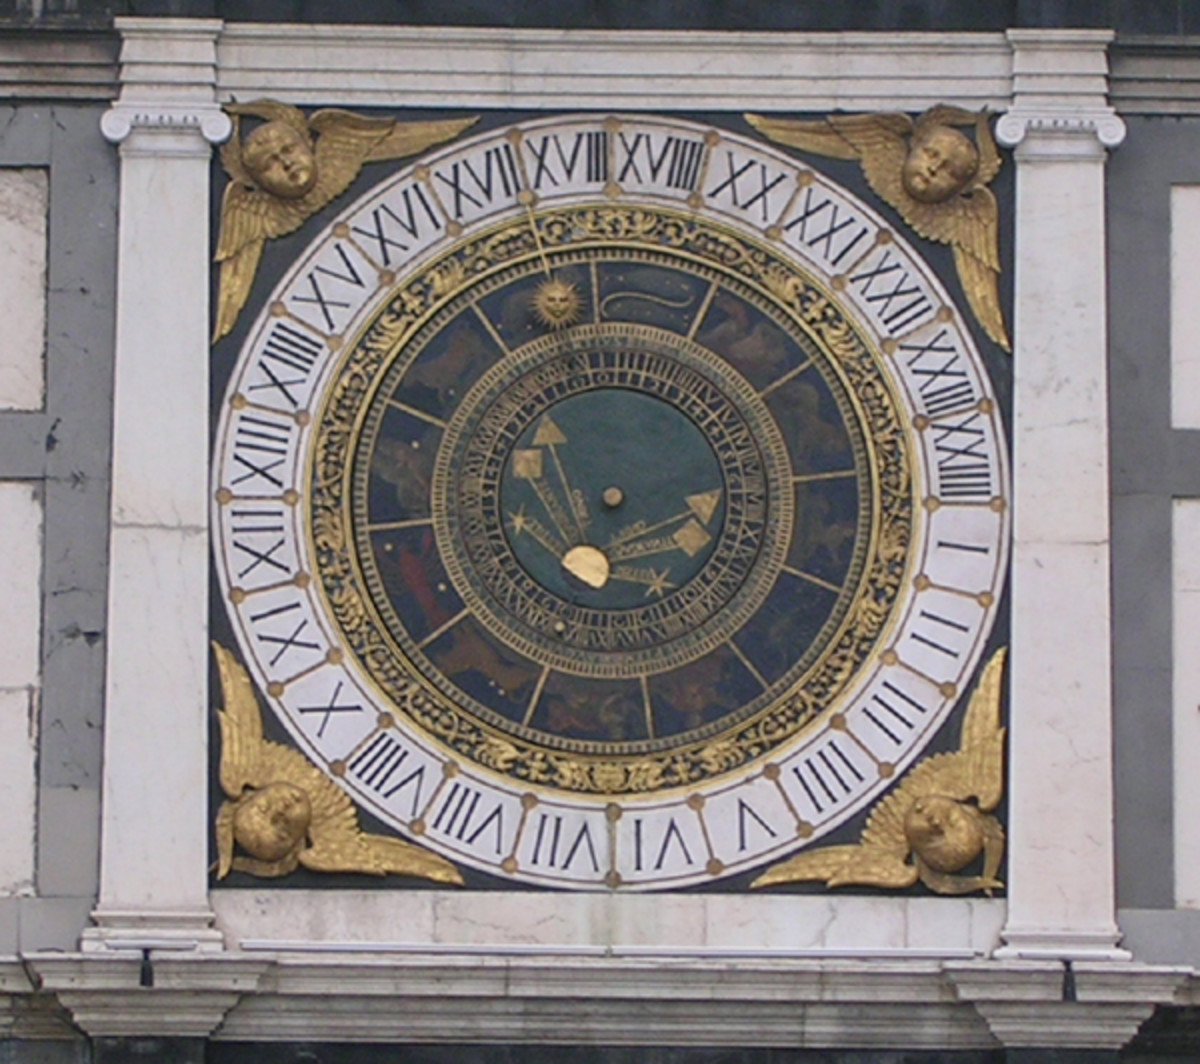 Neat Old Clock - Public Domain